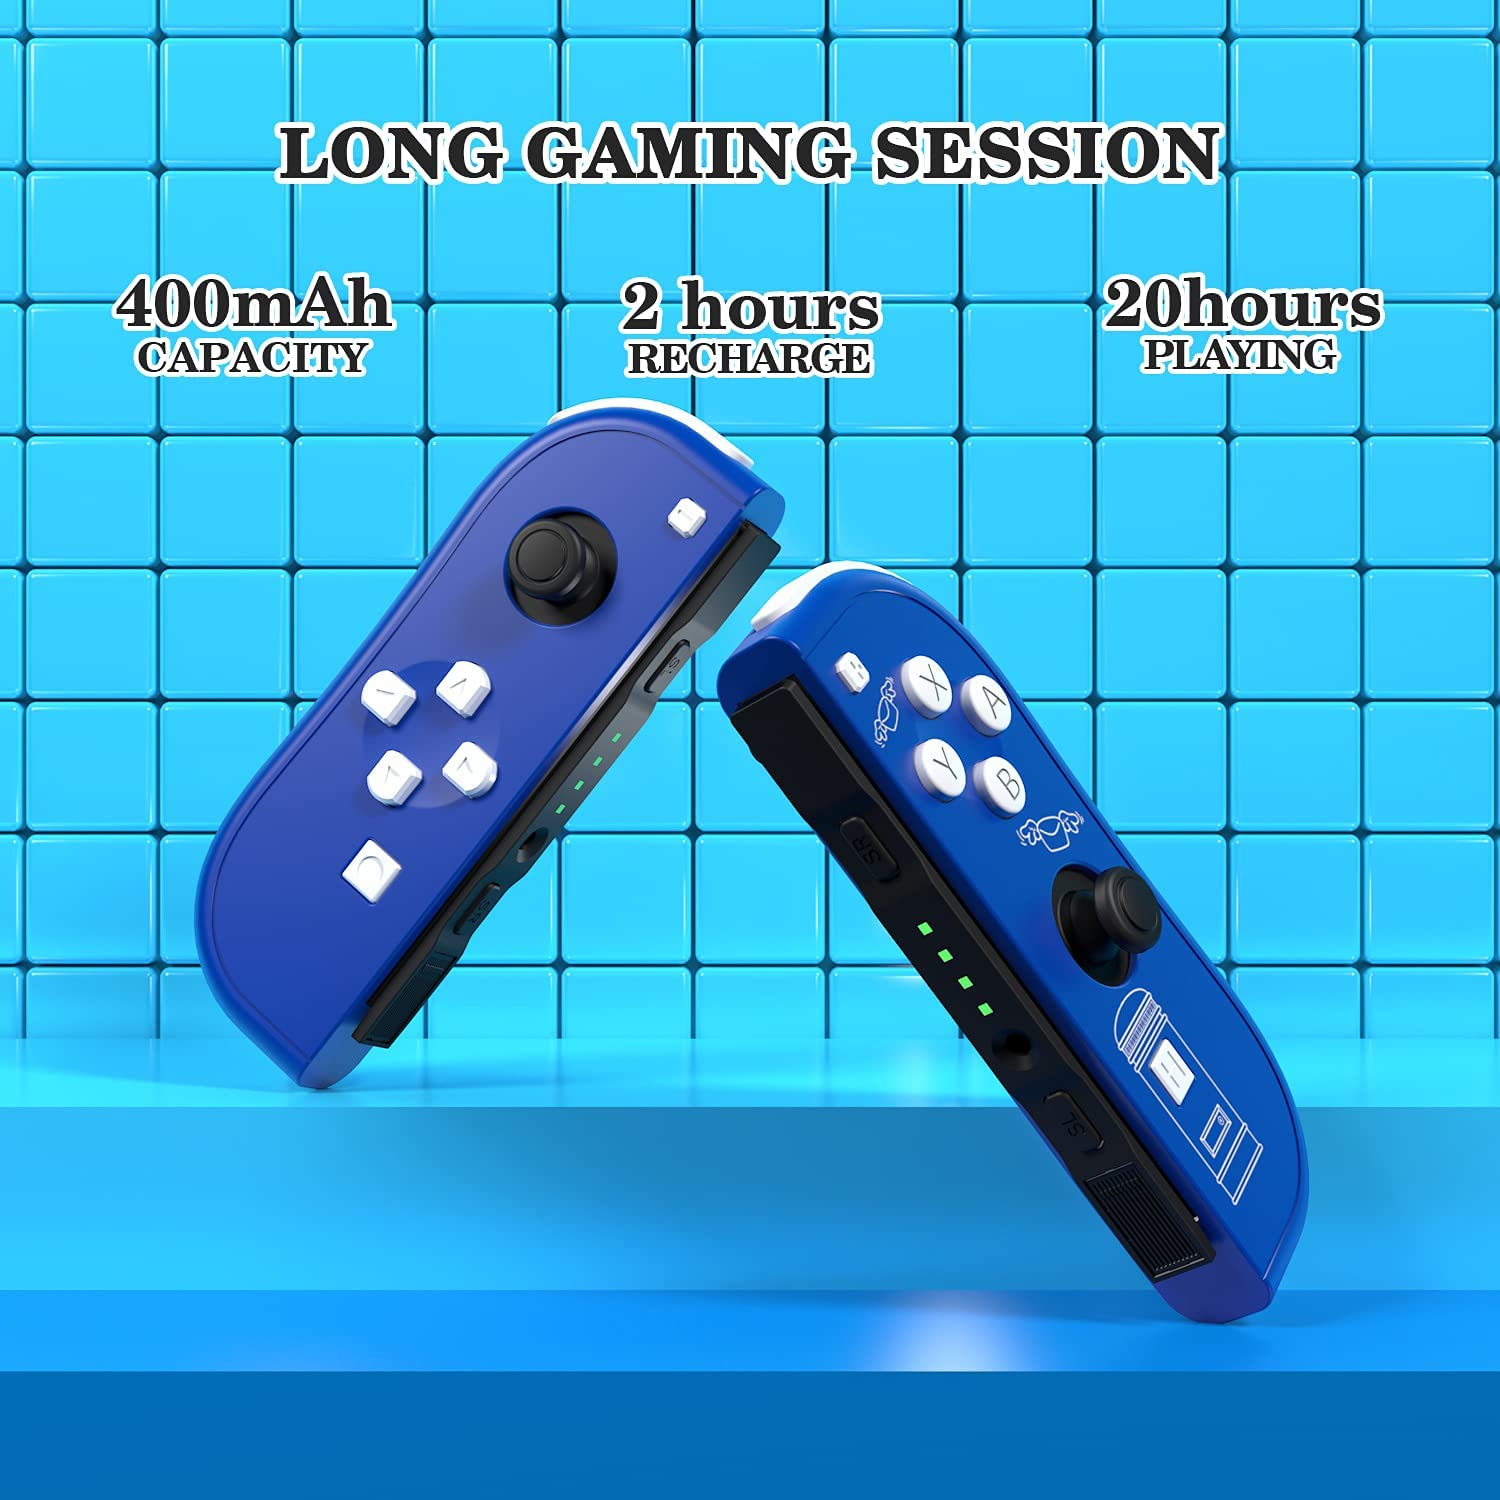 SINGLAND Replacement for N-Switch Joycon Controller – Wireless L/R Joy-Con Controllers Compatible with Switch/Lite – Alternative N-Switch Remotes w/Wrist Strap – Blue